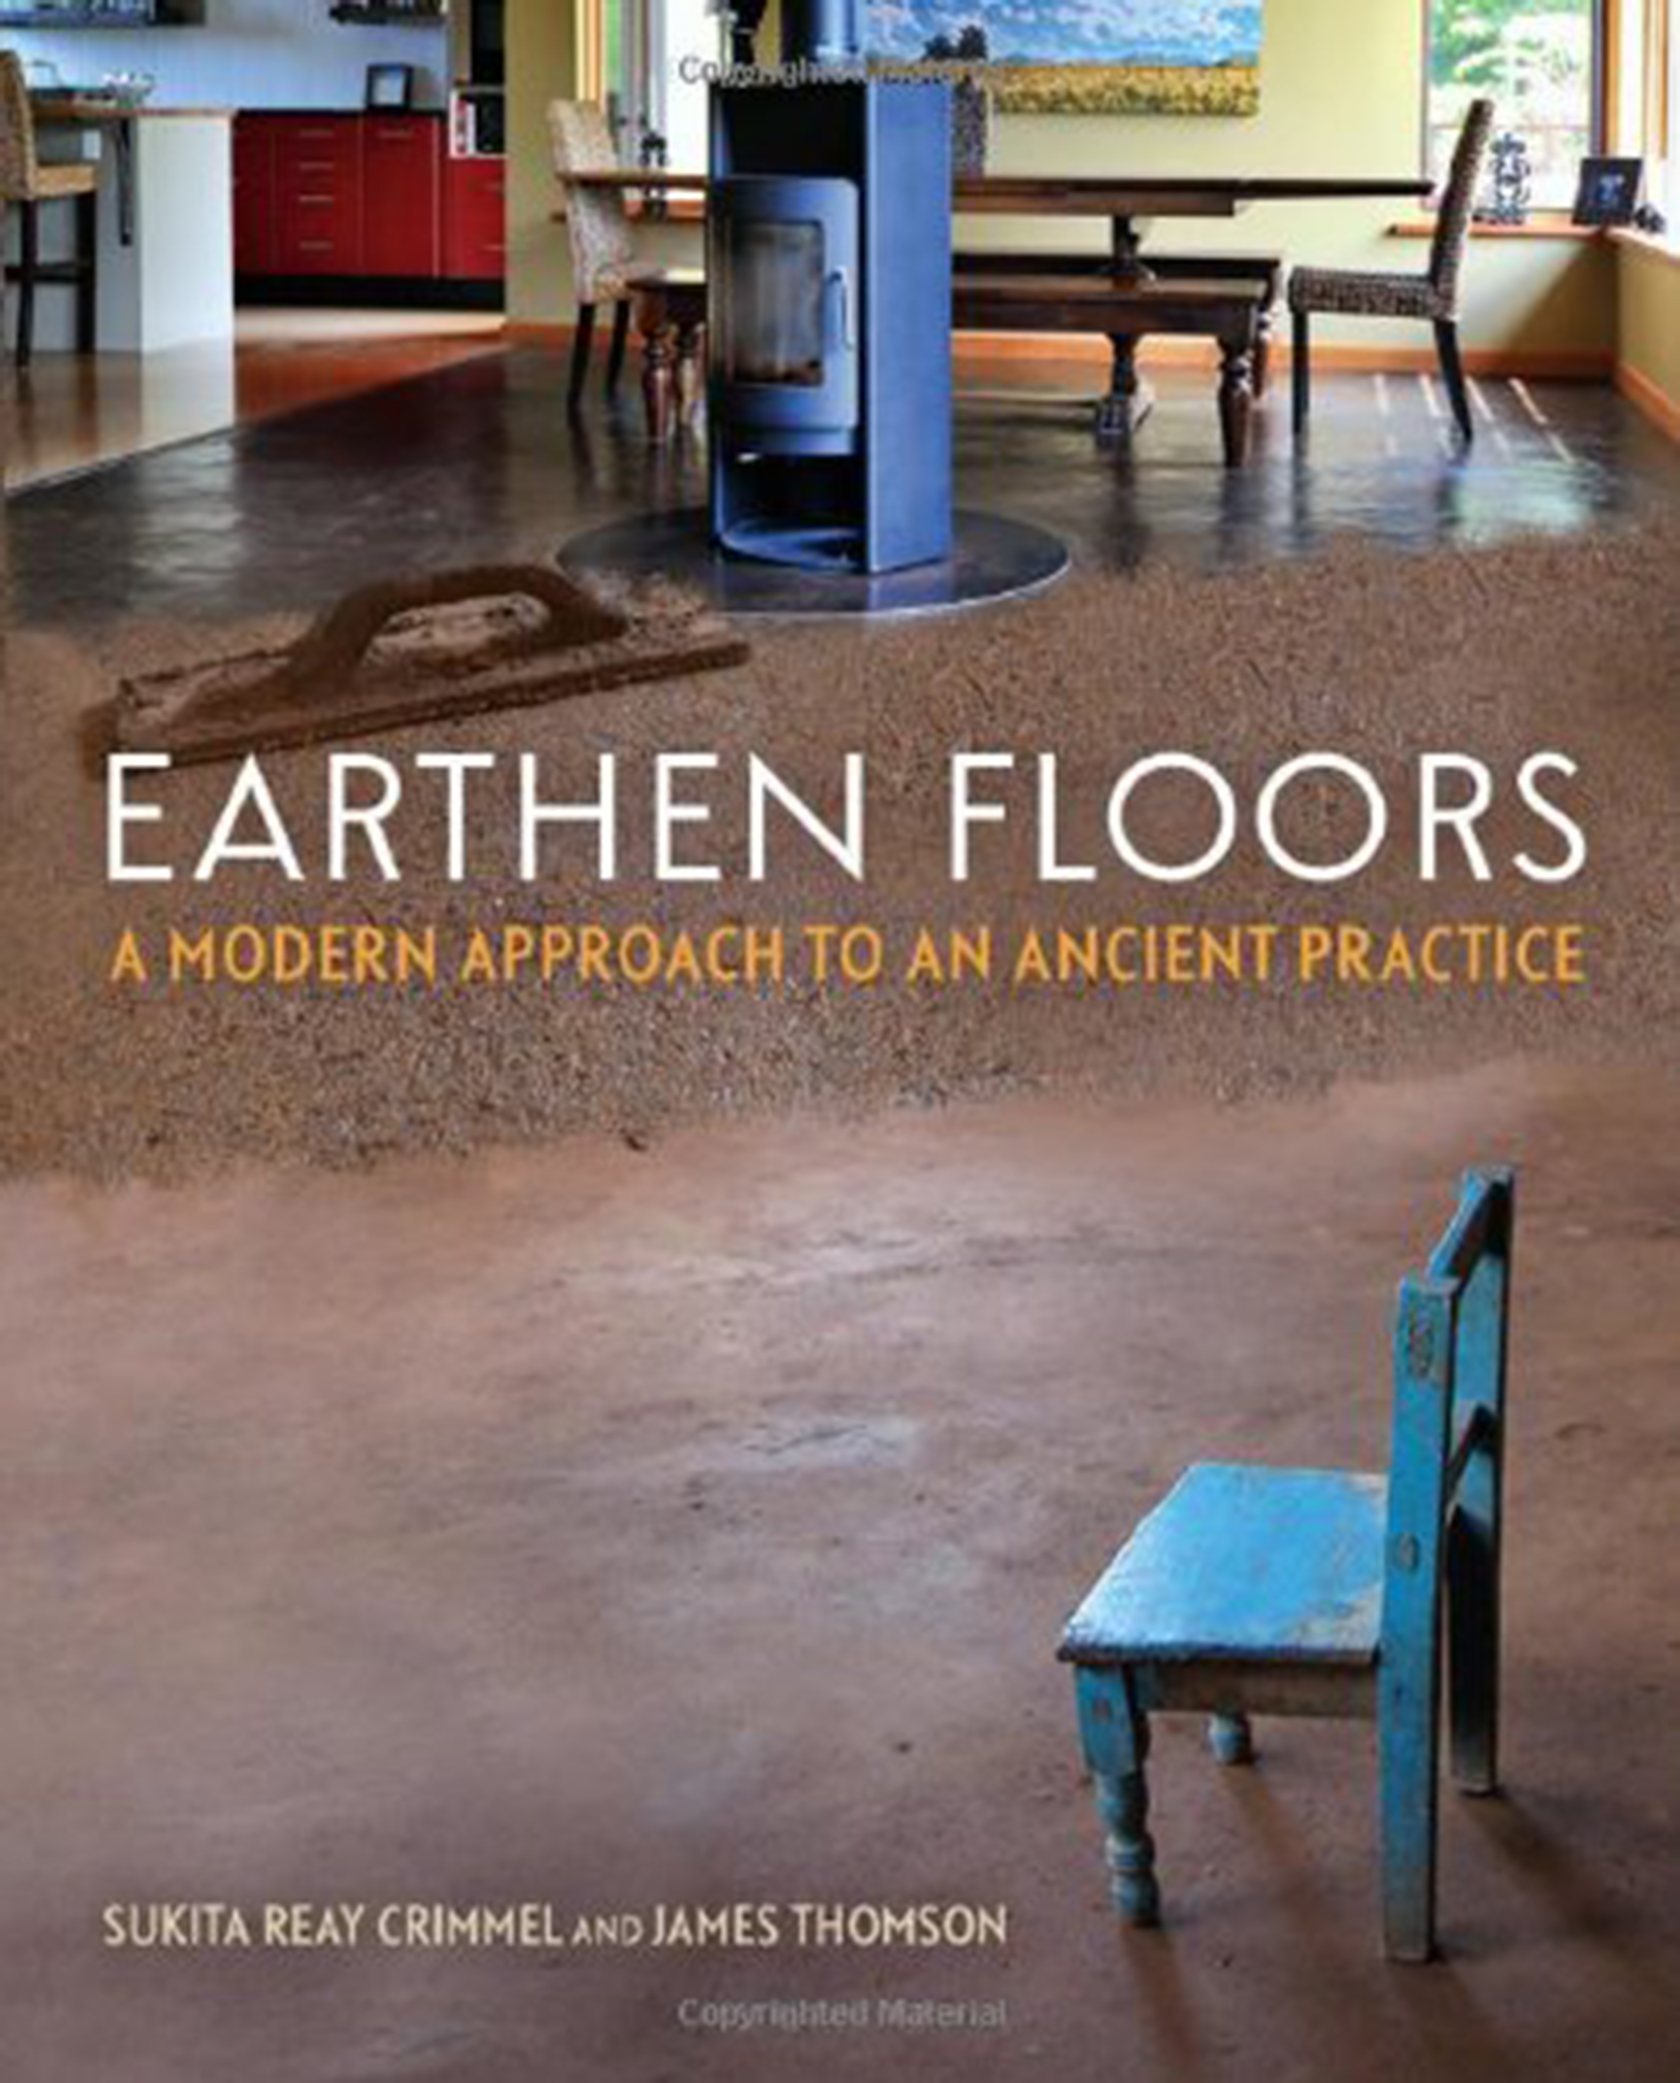 Earthen Floors: A Modern Approach to an Ancient Practice [Book Review]